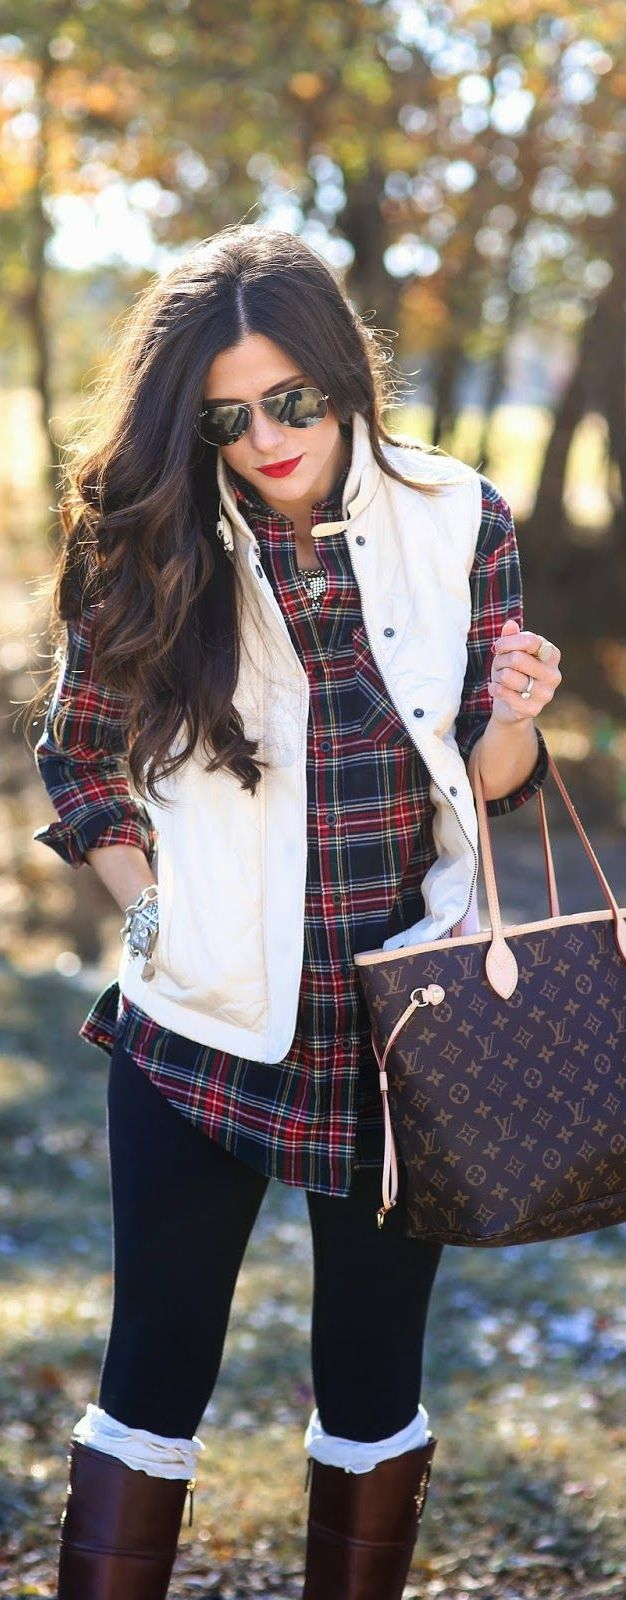 Ways to Style Leggings! Play up your favorite plaid and vest combos over your leggings! Finish off your look with some great riding boots (don't forget the boot socks!) and dainty jewelry to be ready for whatever comes your way! Would you wear this look this season?